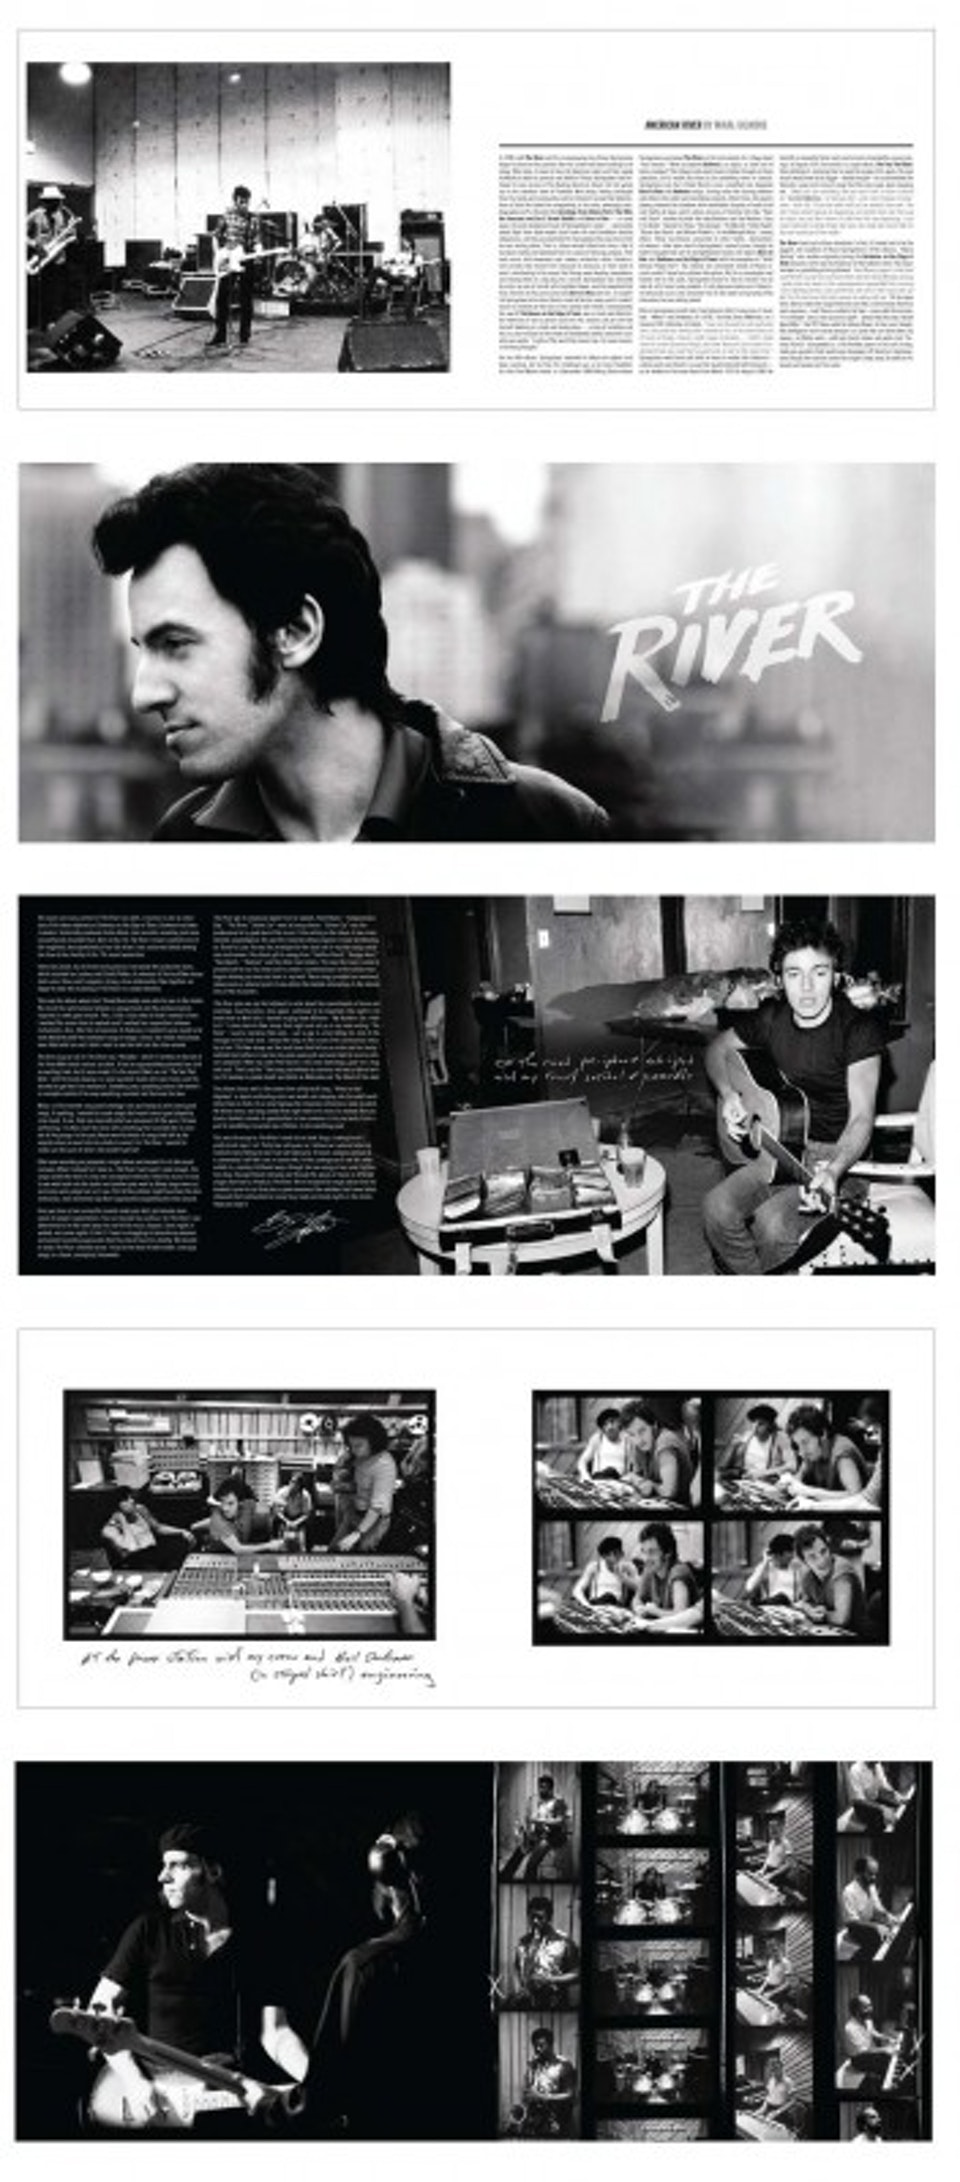 The River Set Box - Sample spreads from book